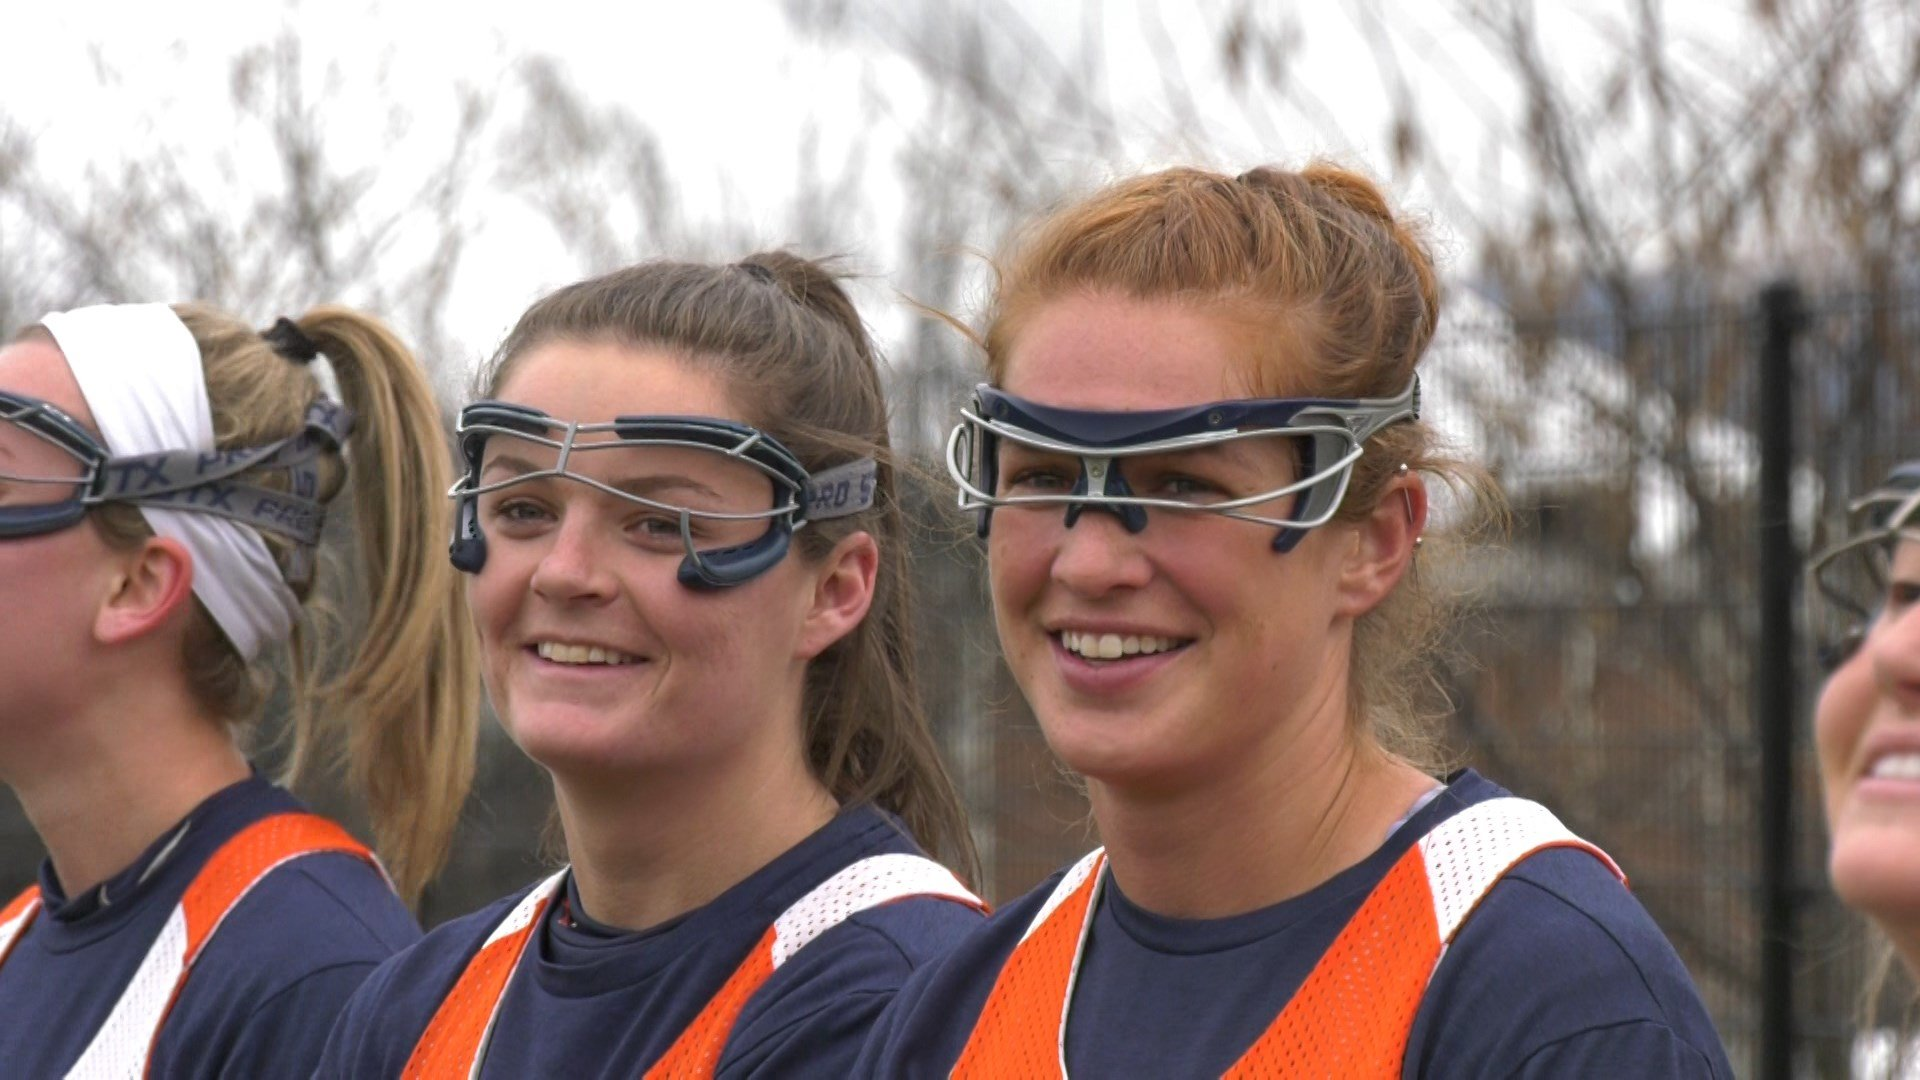 Maggie Jackson (left) and Kasey Behr (right)